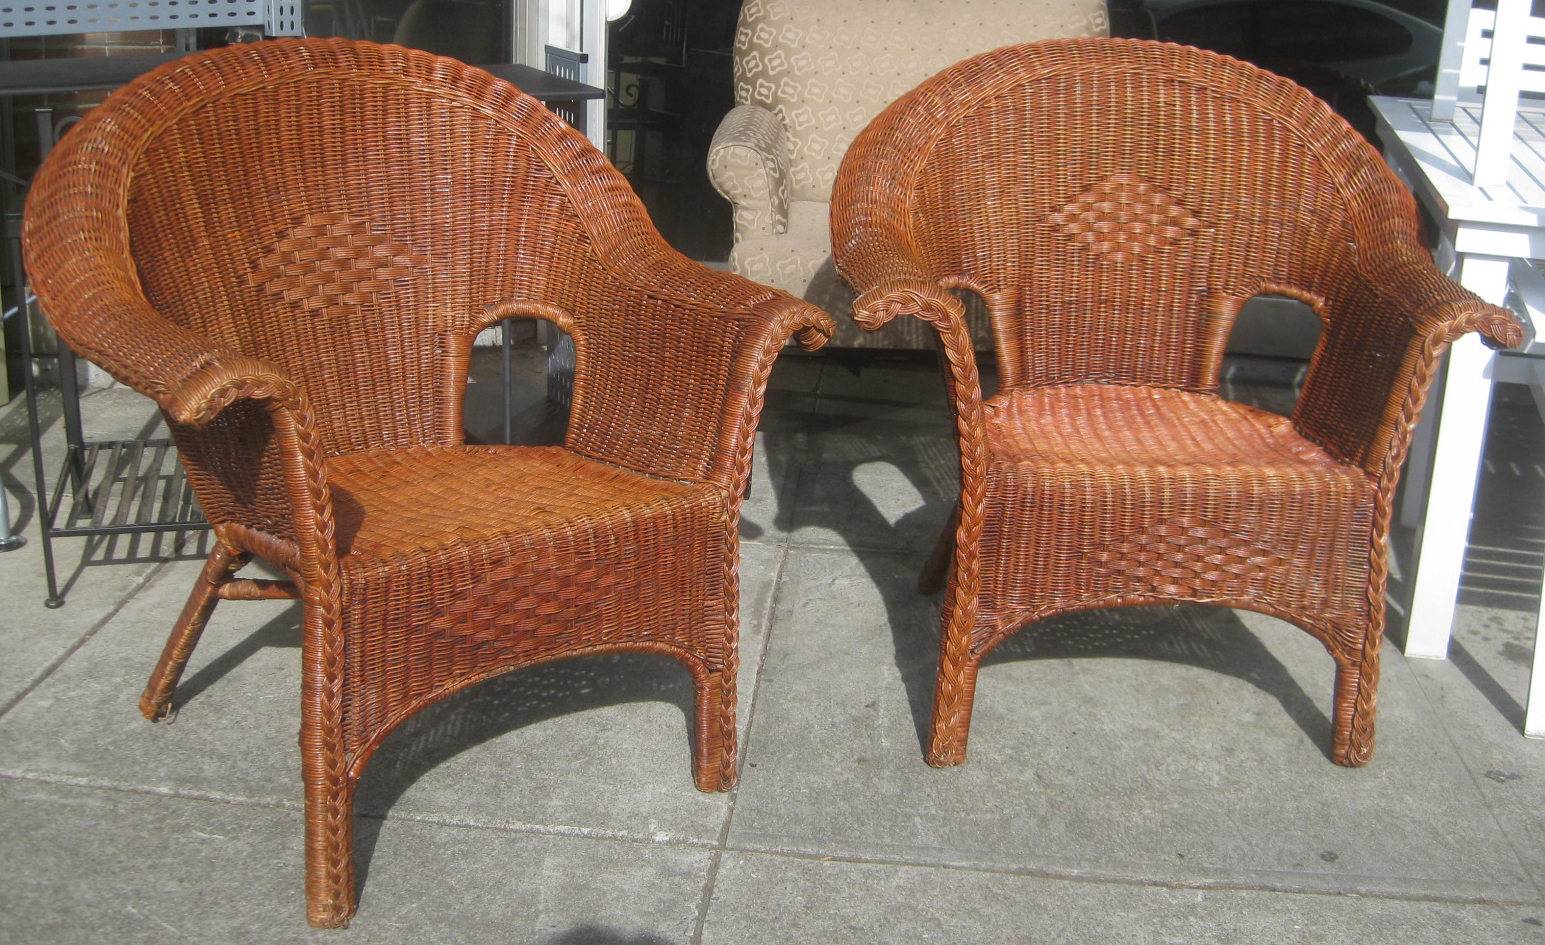 Wicker Patio Chair Uhuru Furniture And Collectibles Sold Wicker Patio Chairs